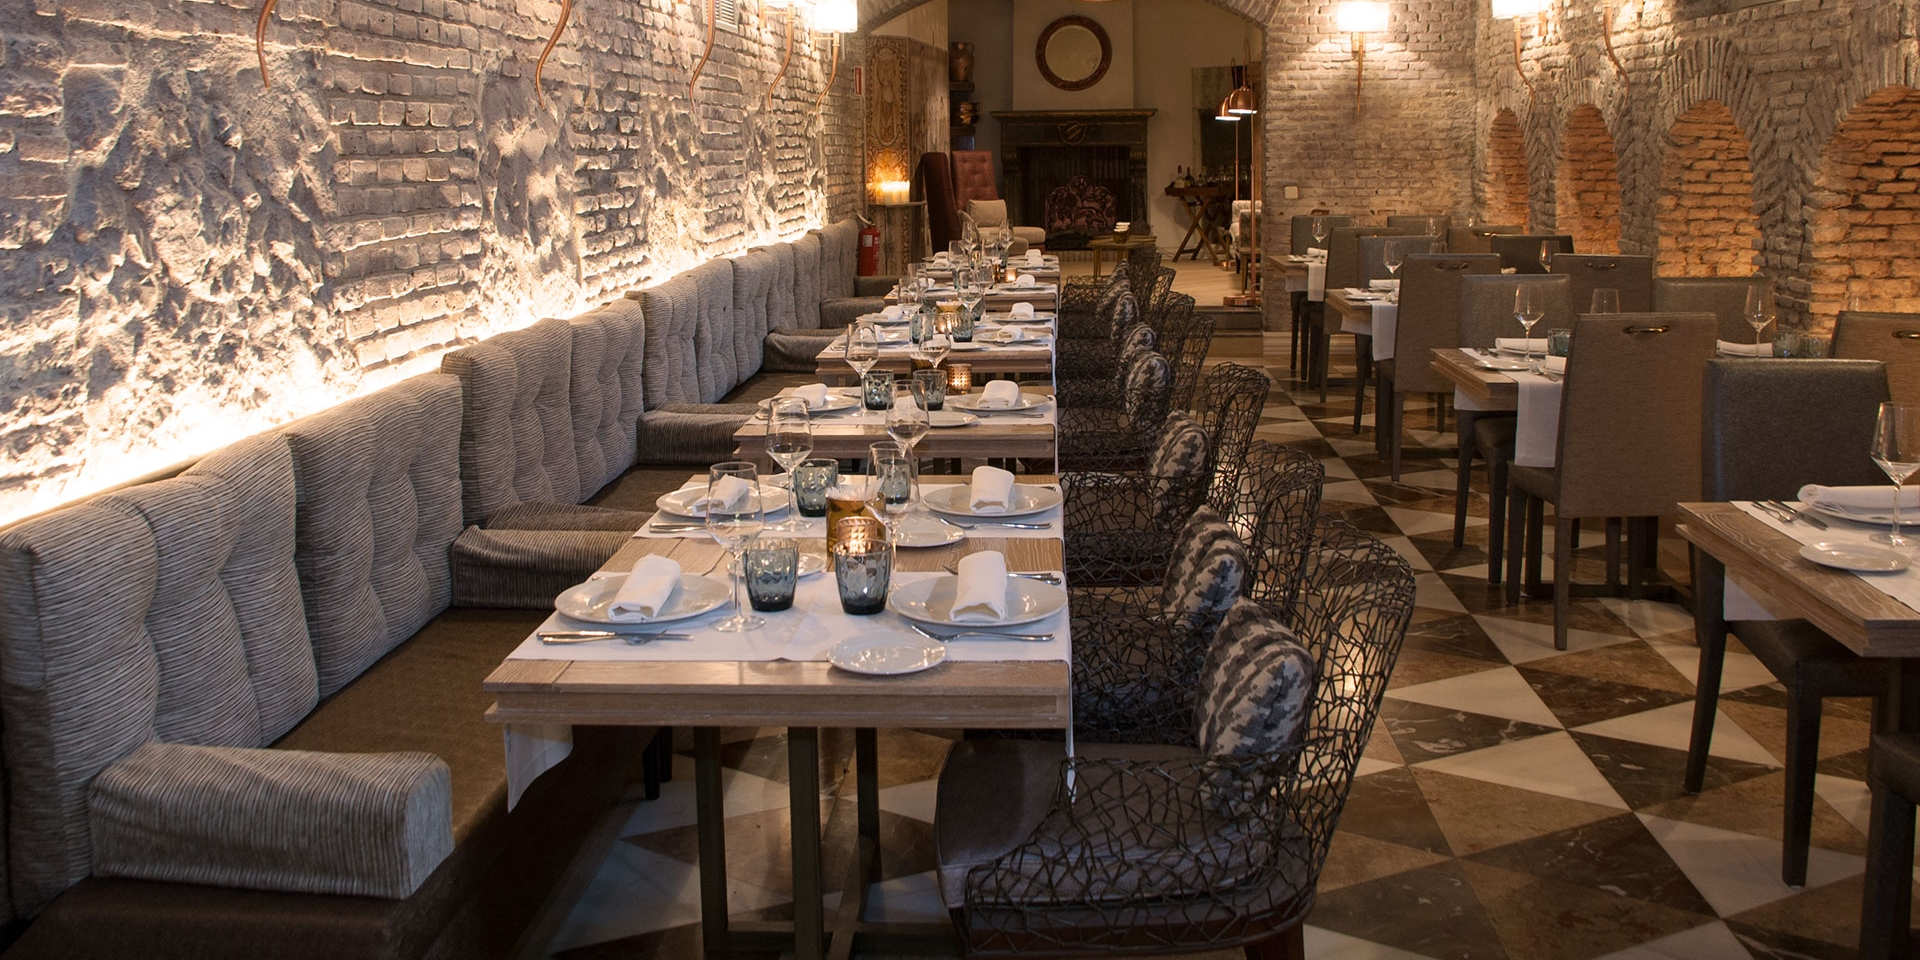 Brunch Café de Oriente (28013 Madrid)